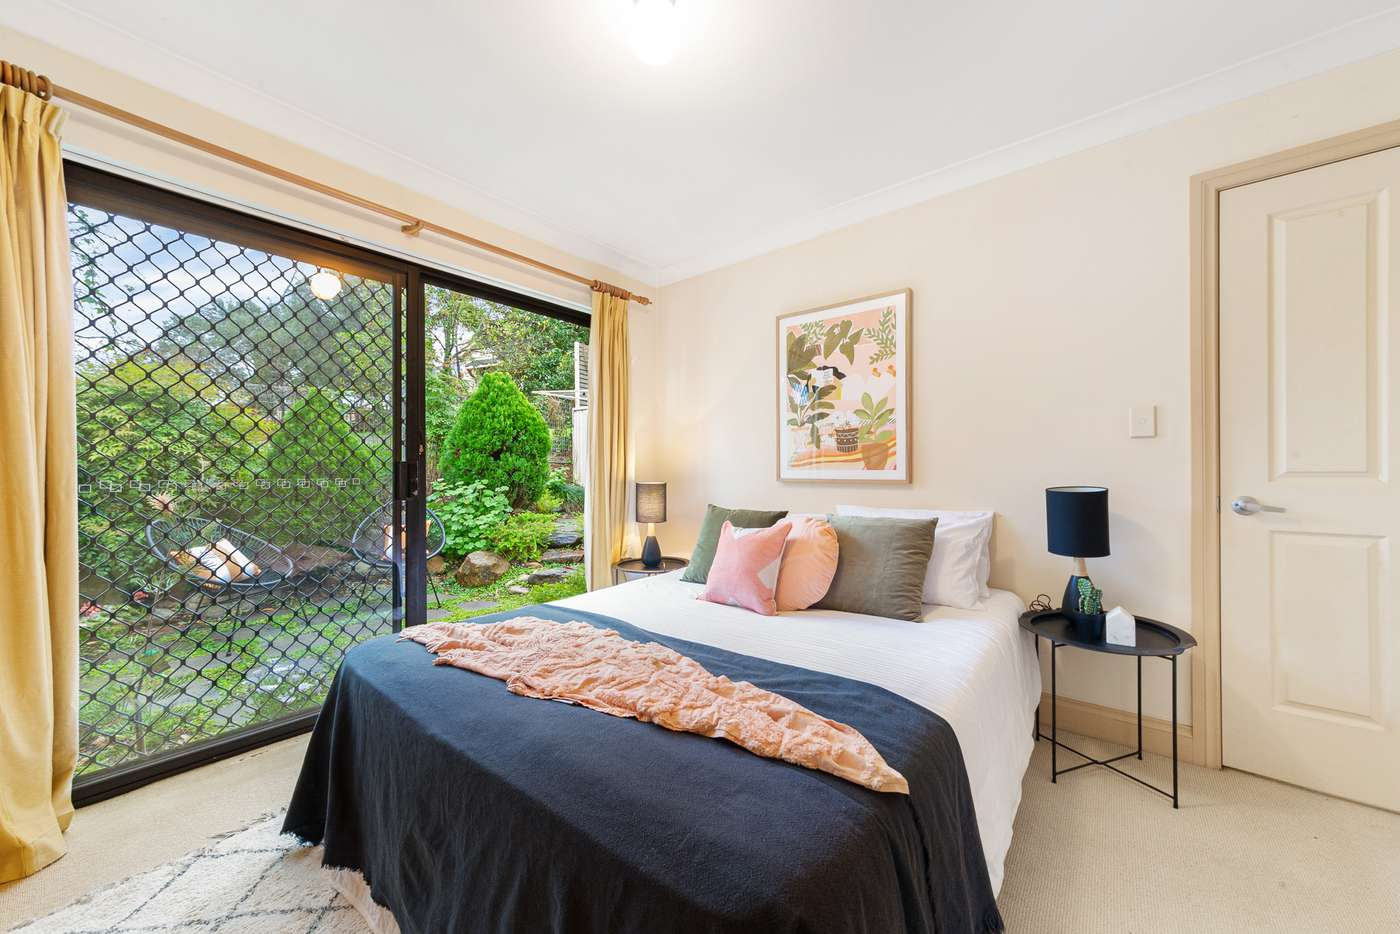 Seventh view of Homely townhouse listing, 3/4 Broadview Avenue, Gosford NSW 2250